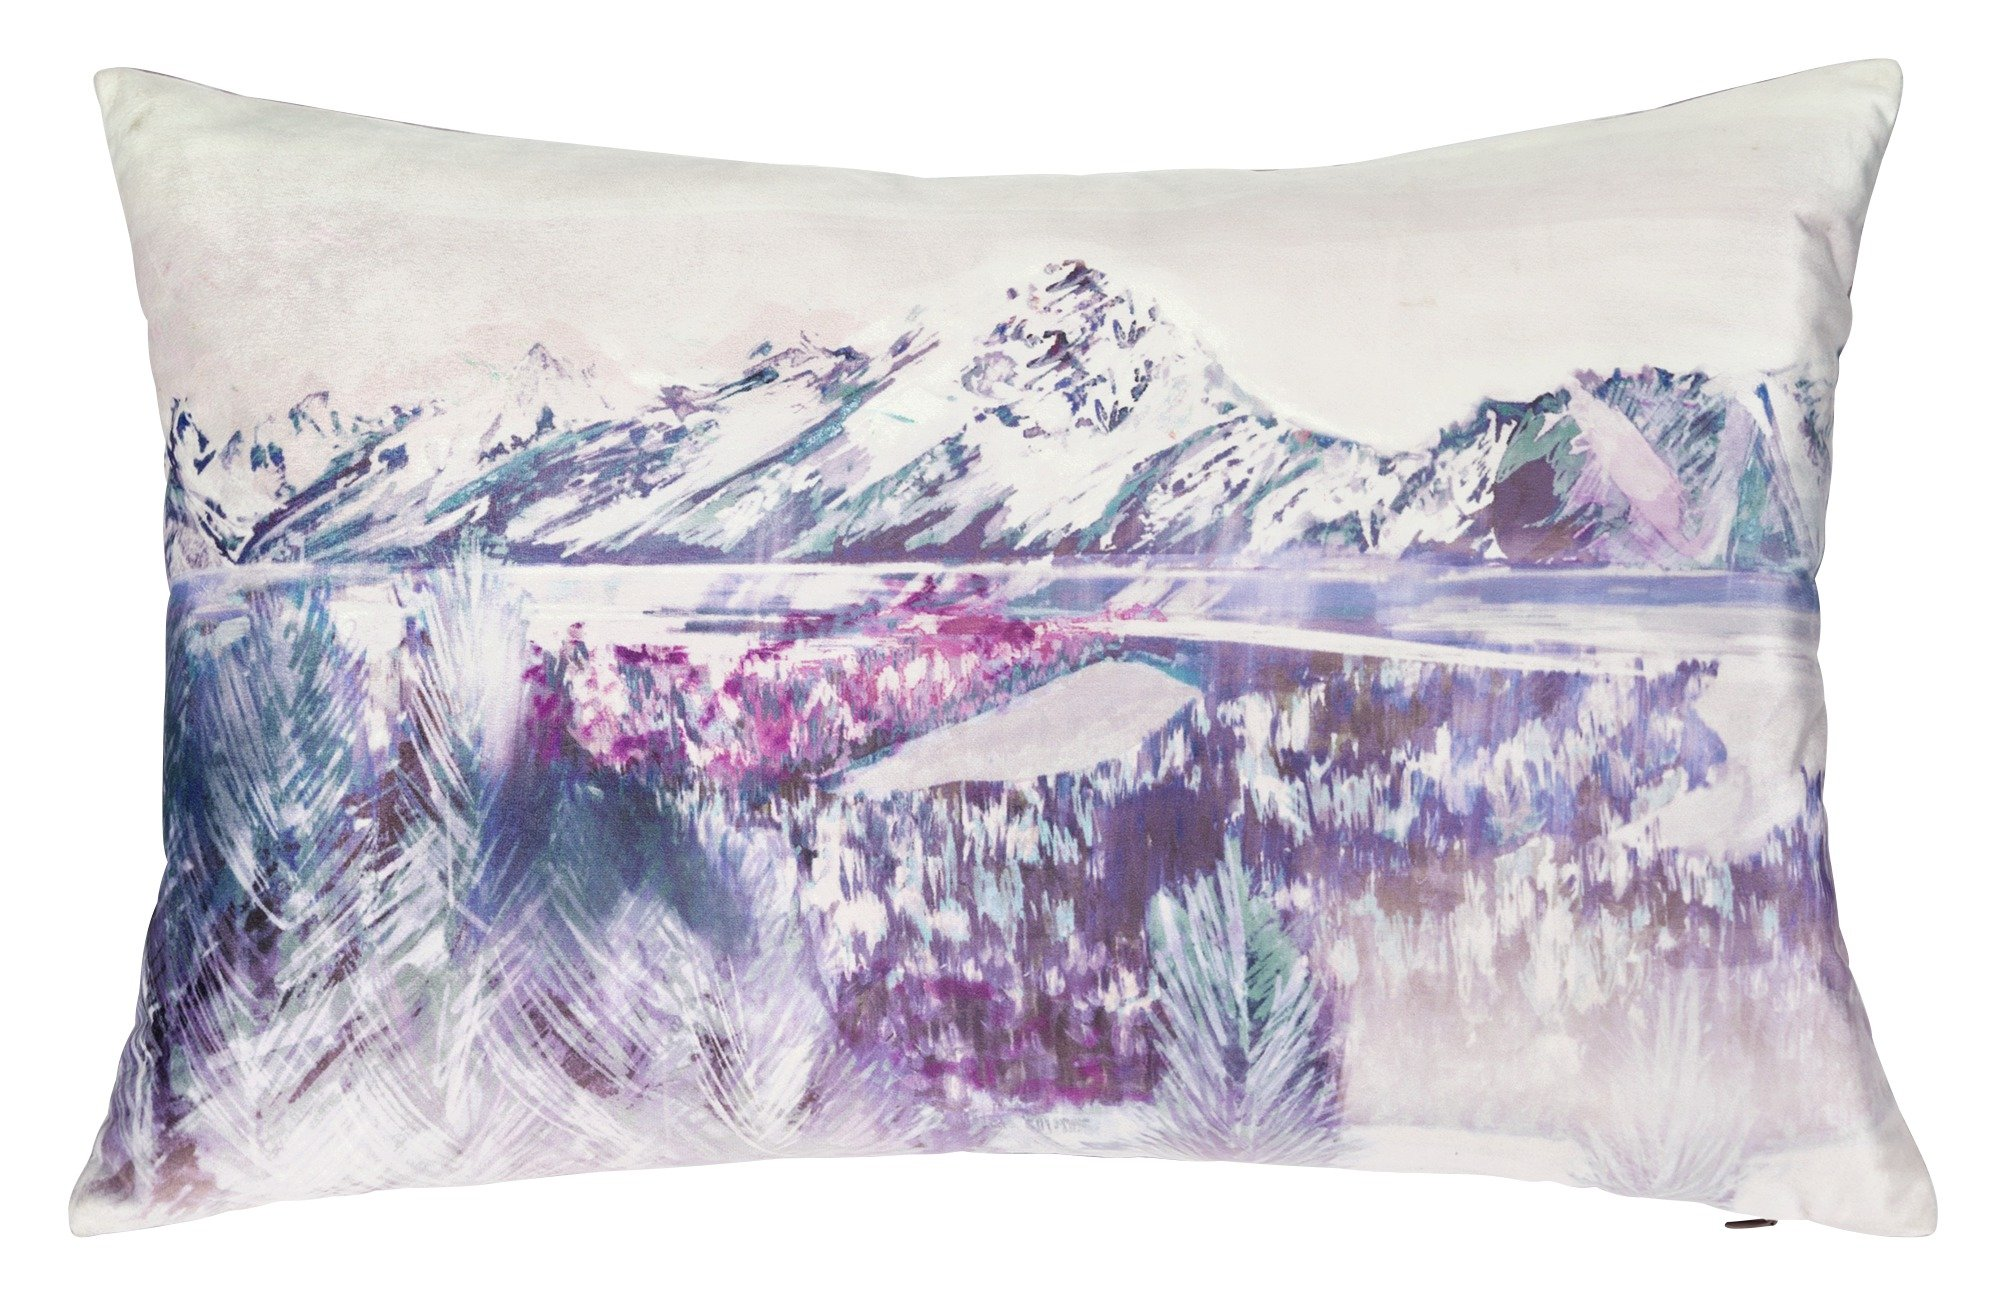 heart of house frosted mountains cushion gay times uk. Black Bedroom Furniture Sets. Home Design Ideas